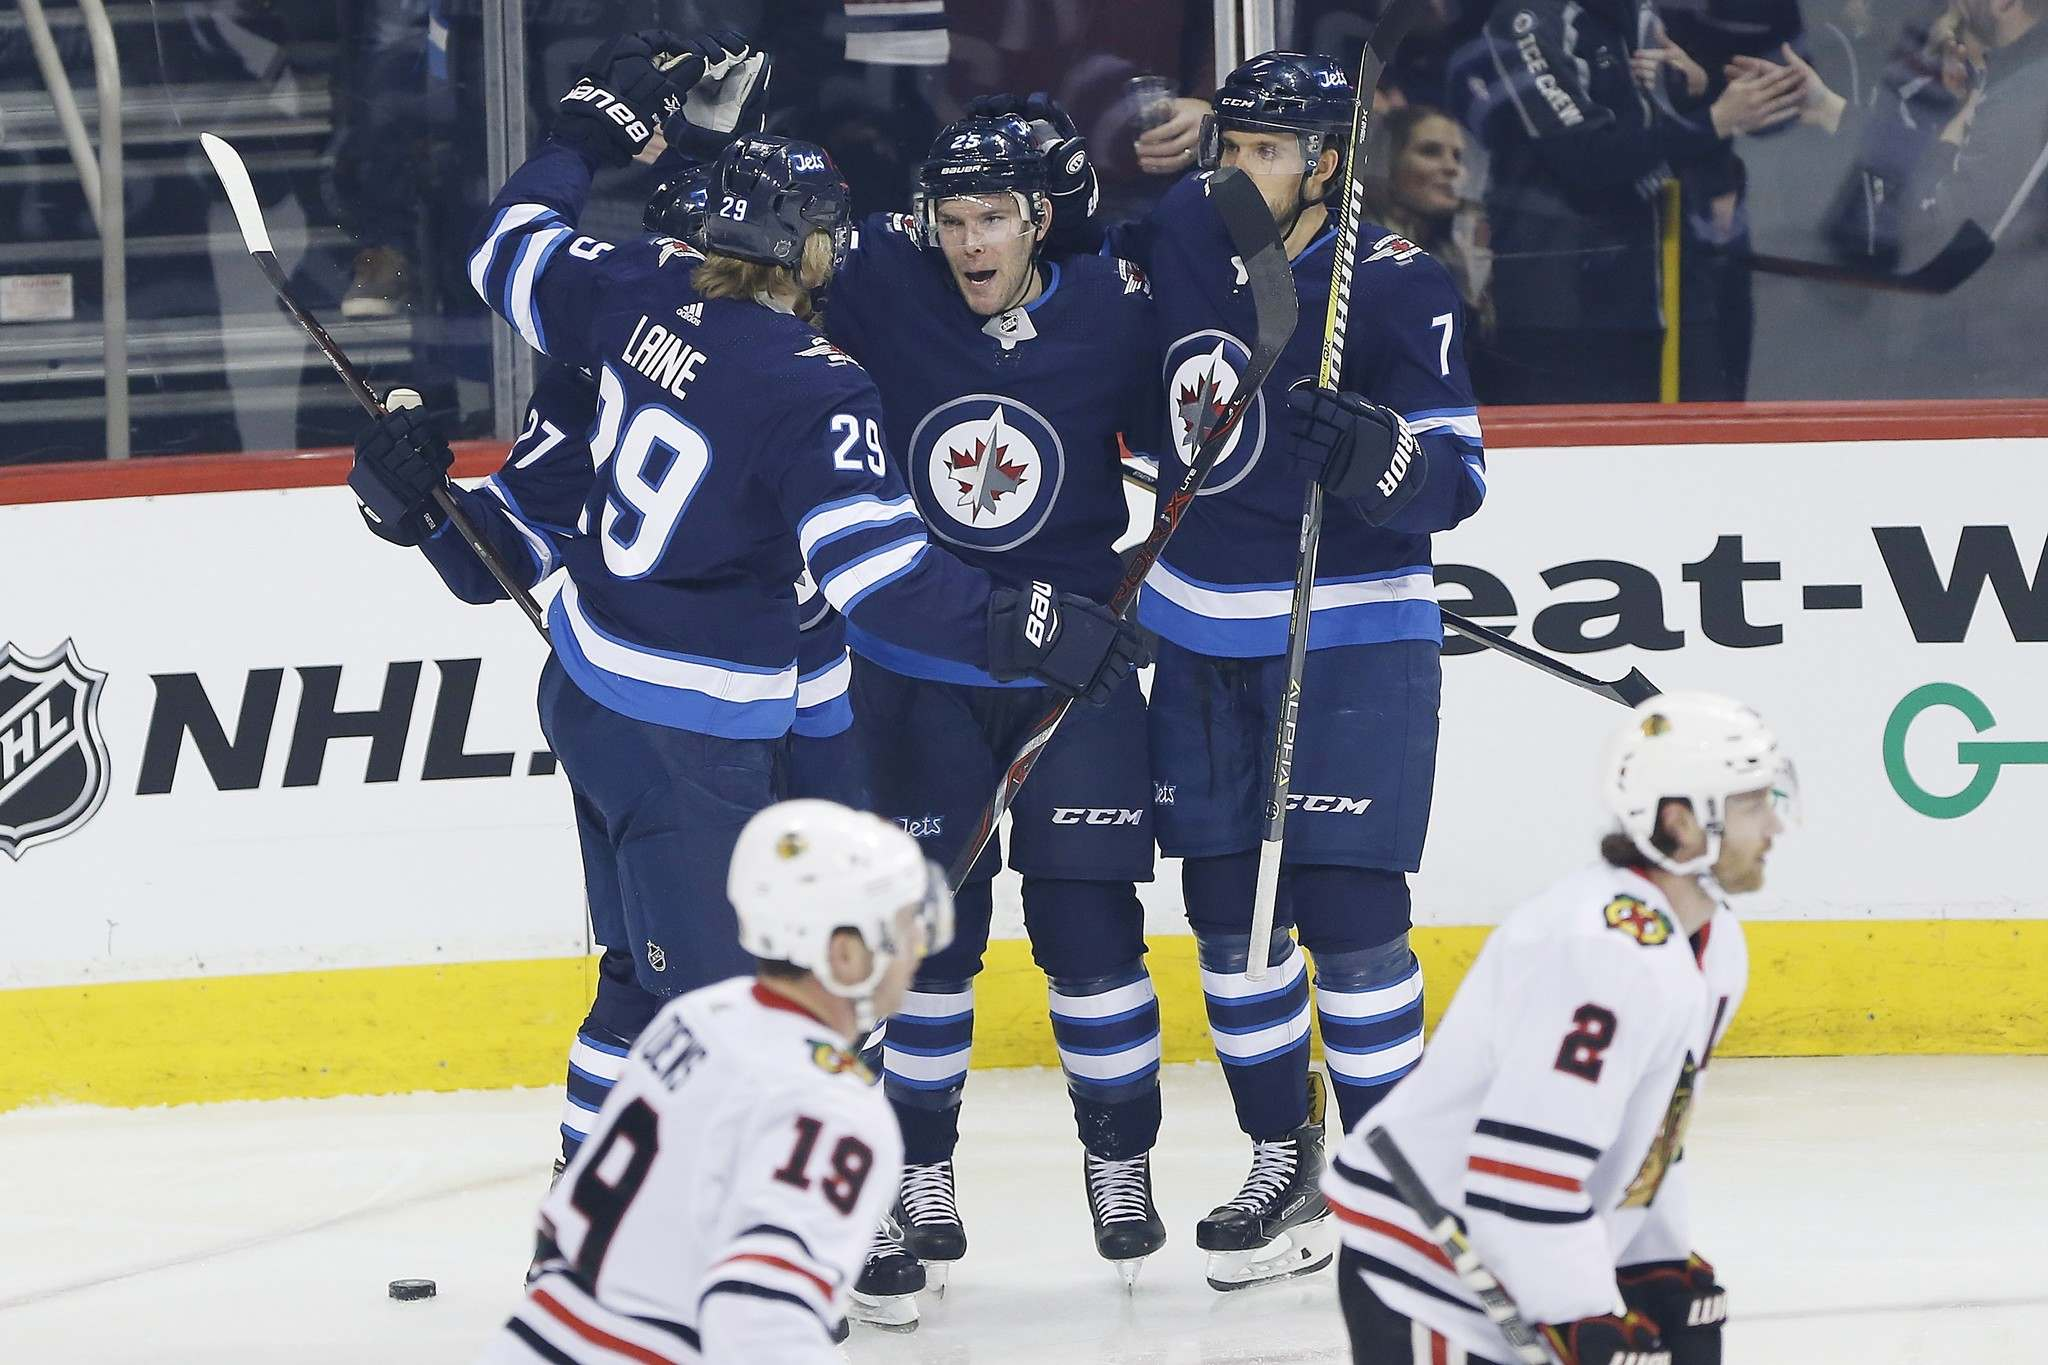 THE CANADIAN PRESS/John Woods</p><p>Winnipeg Jets forwards Nikolaj Ehlers, Patrik Laine, Paul Stastny and defenceman Ben Chiarot celebrate Stastny&#39;s goal against the Chicago Blackhawks during first period in Winnipeg on Thursday.</p>